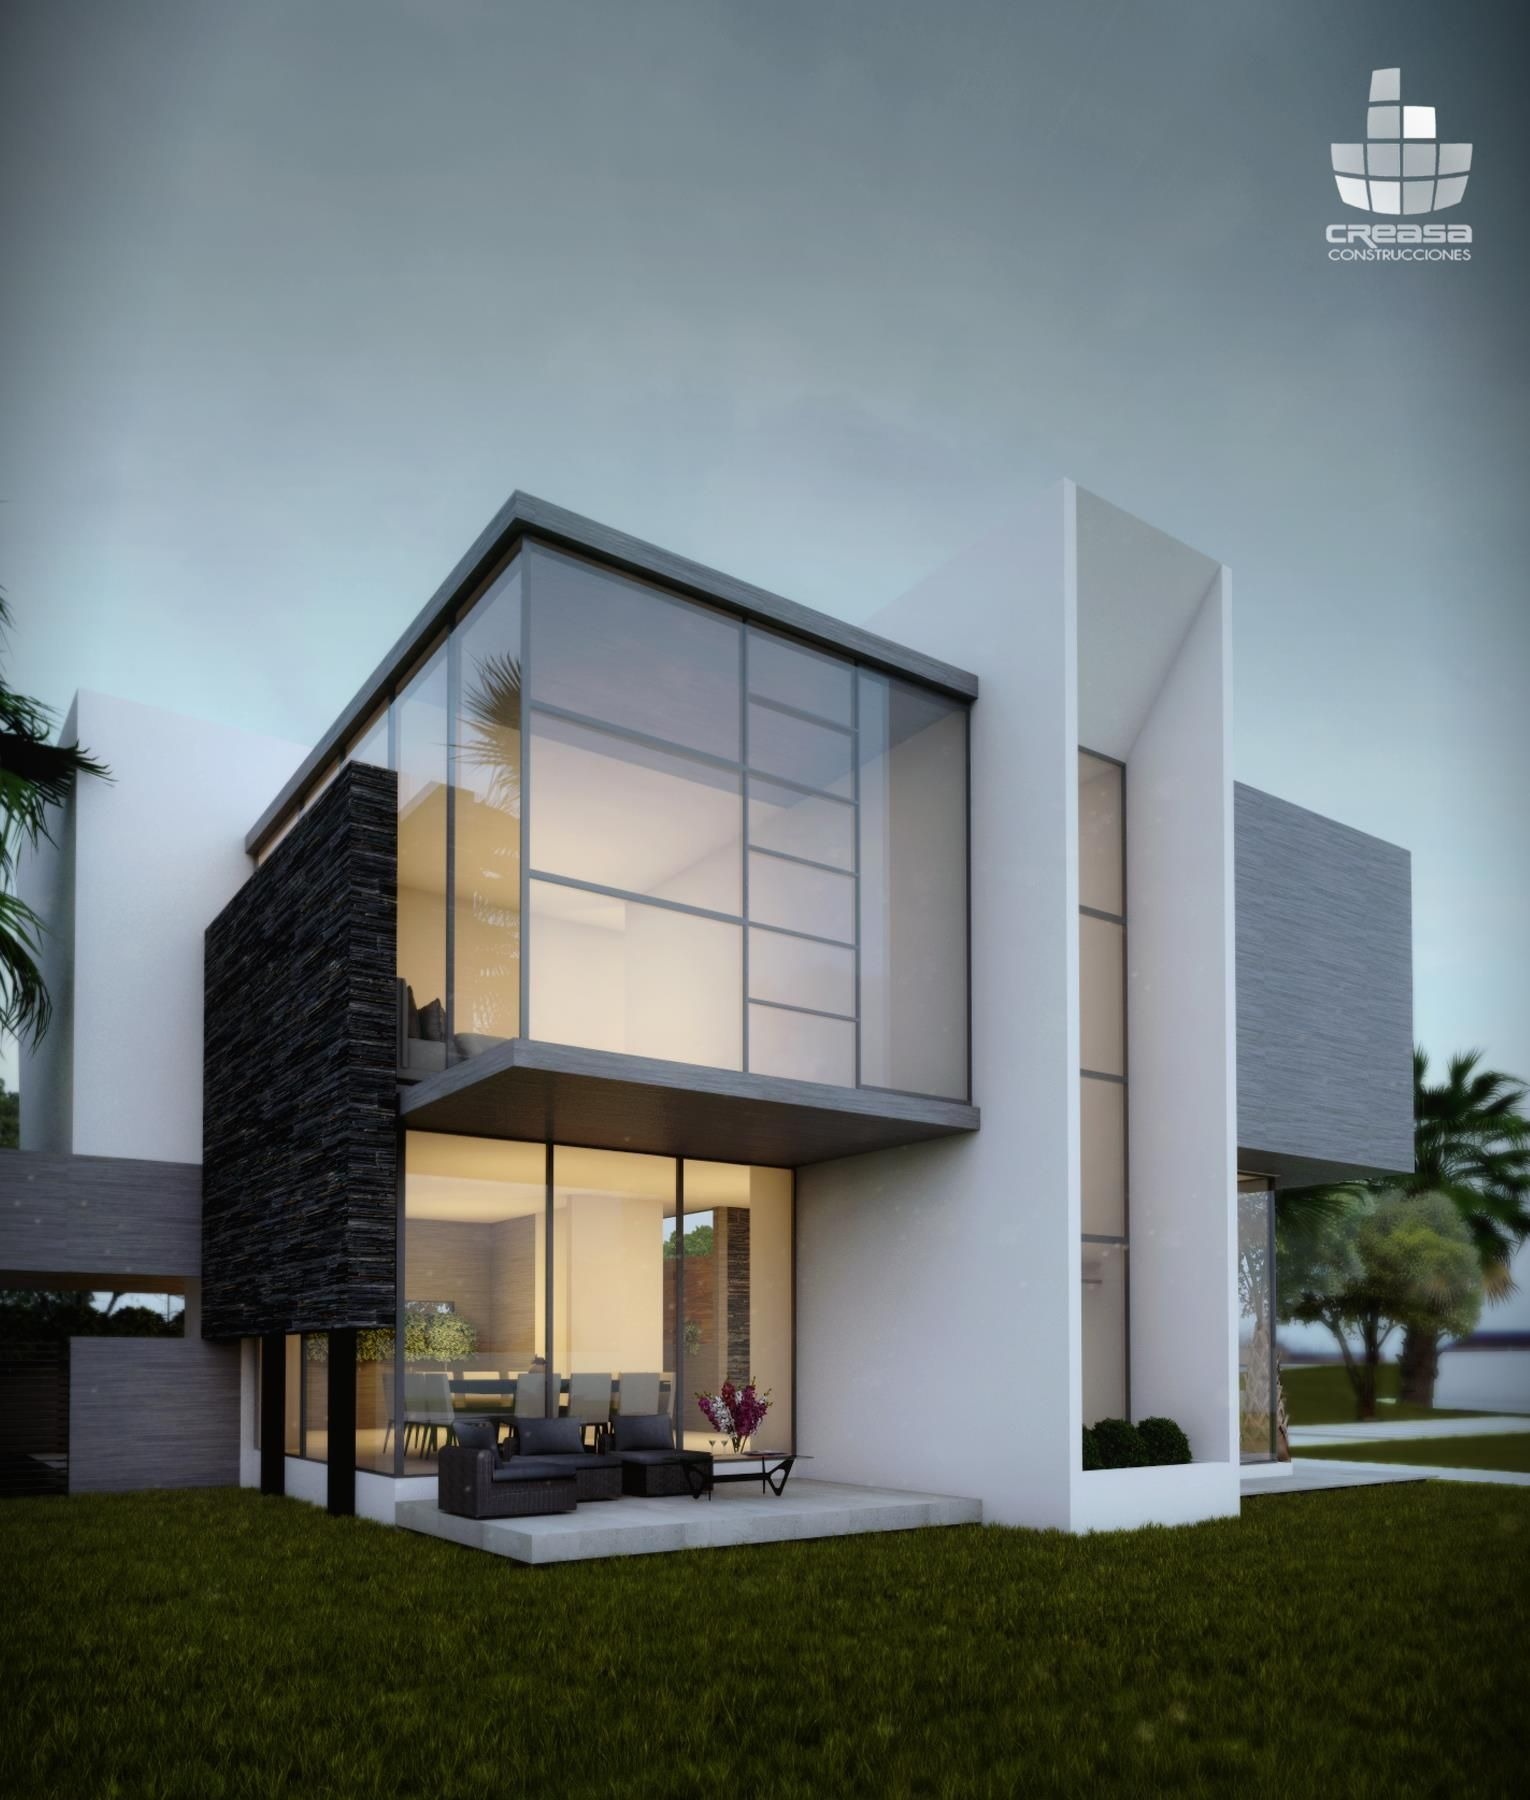 Creasa modern architecture pinterest villas house for House structure design